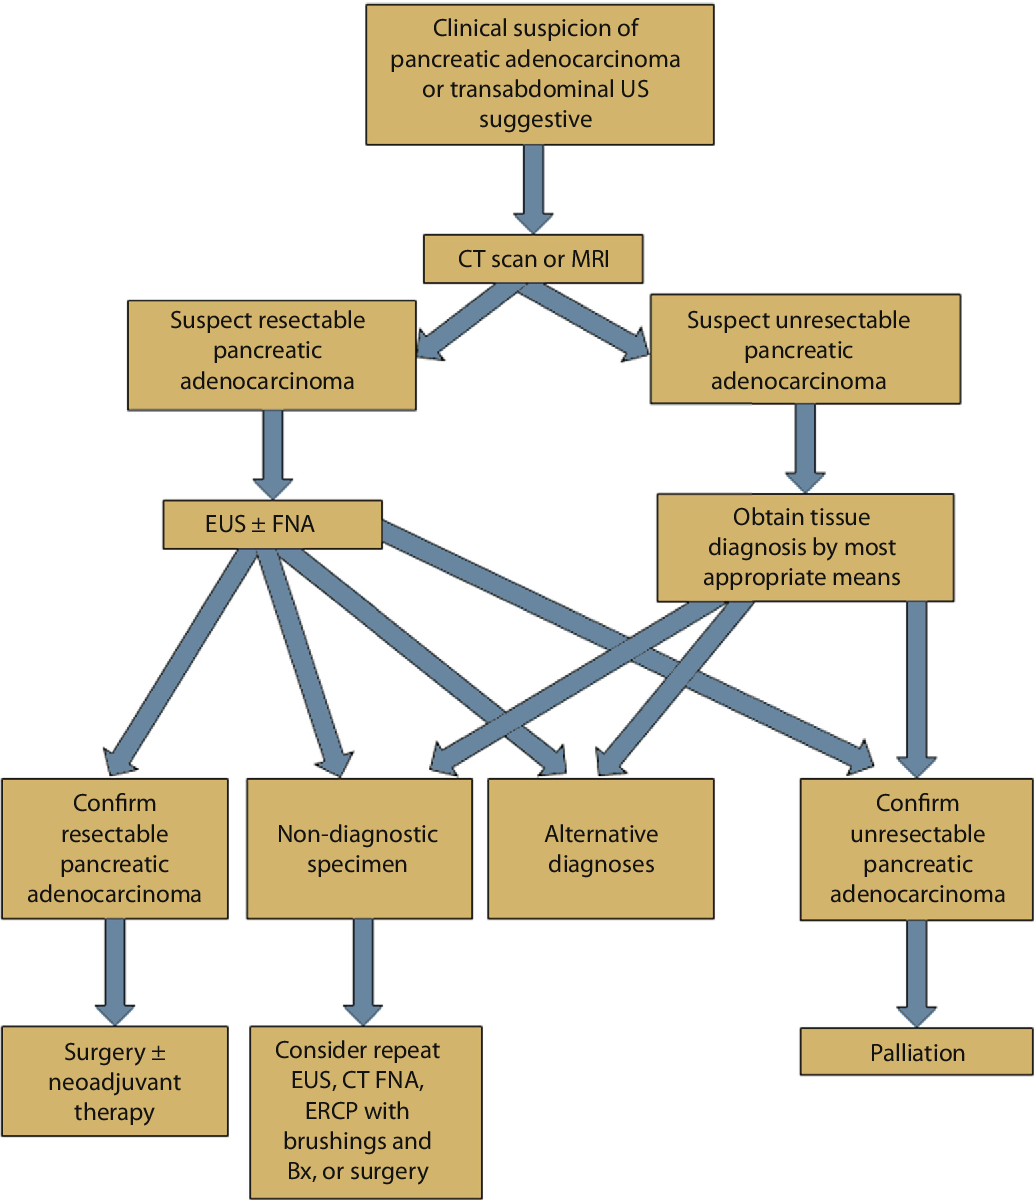 The role of endoscopy in the evaluation and management of